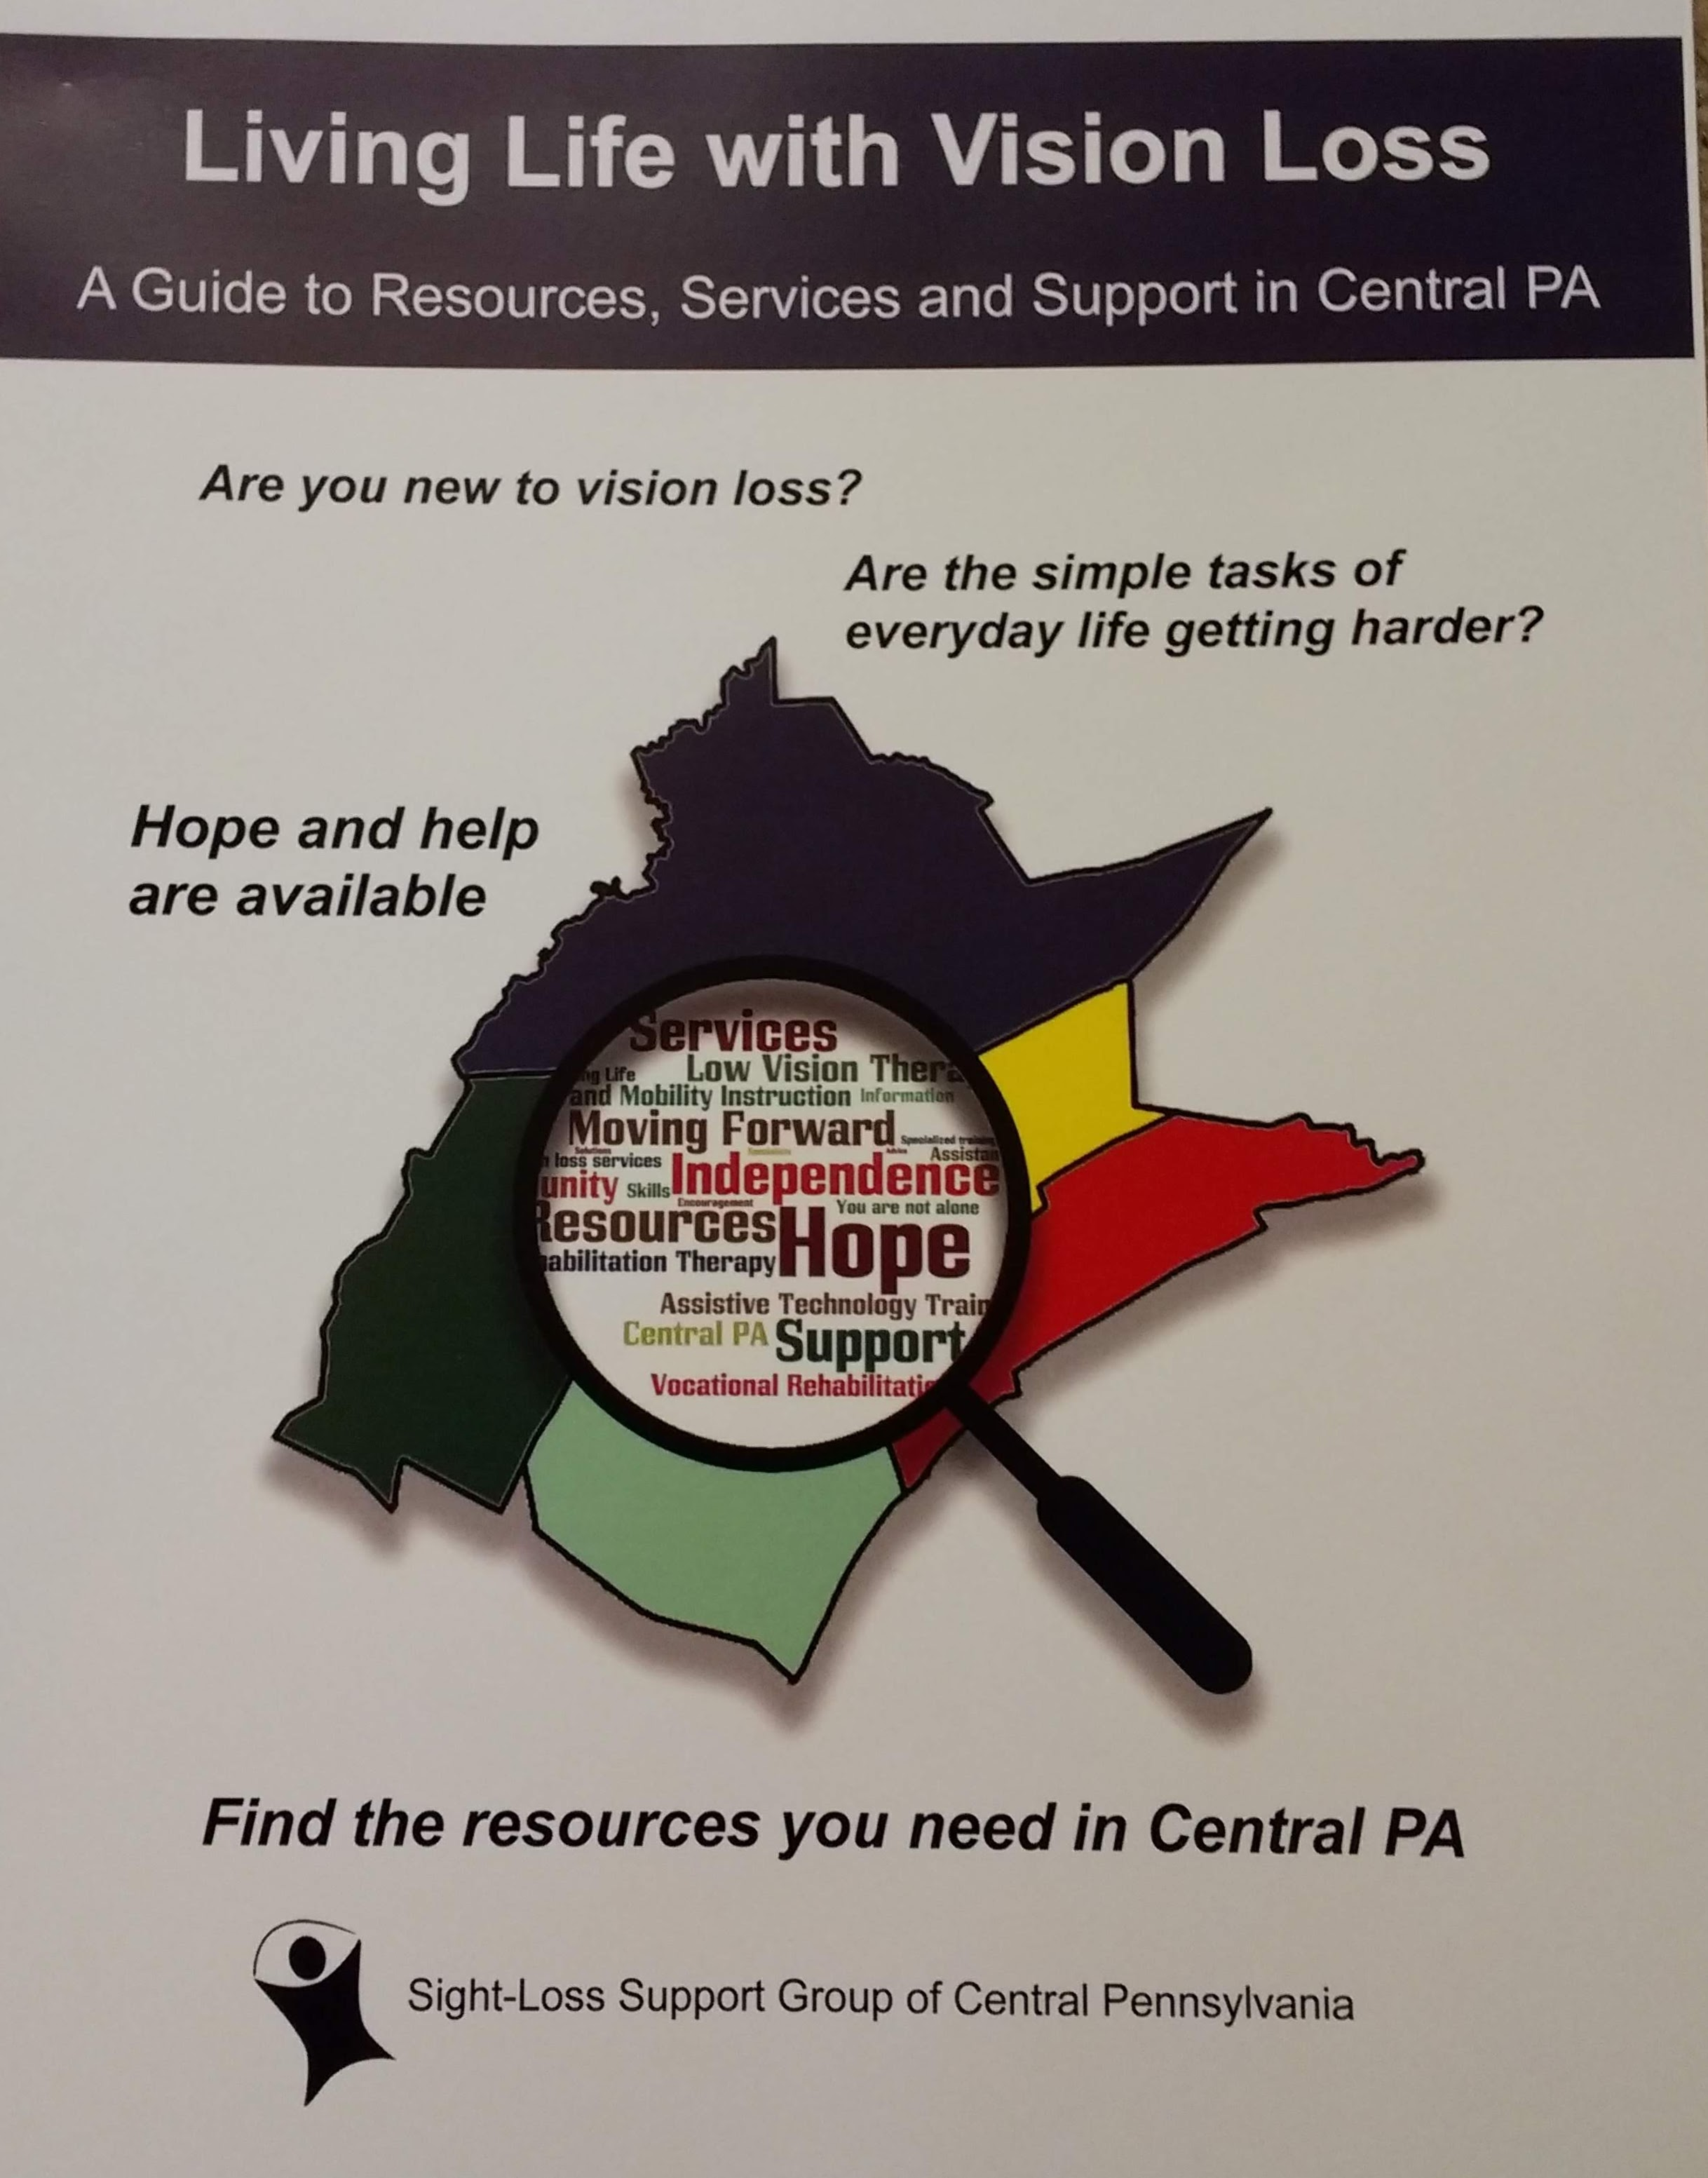 Living Life with Vision Loss: A Guide to Resources, Services and Support in Central PA